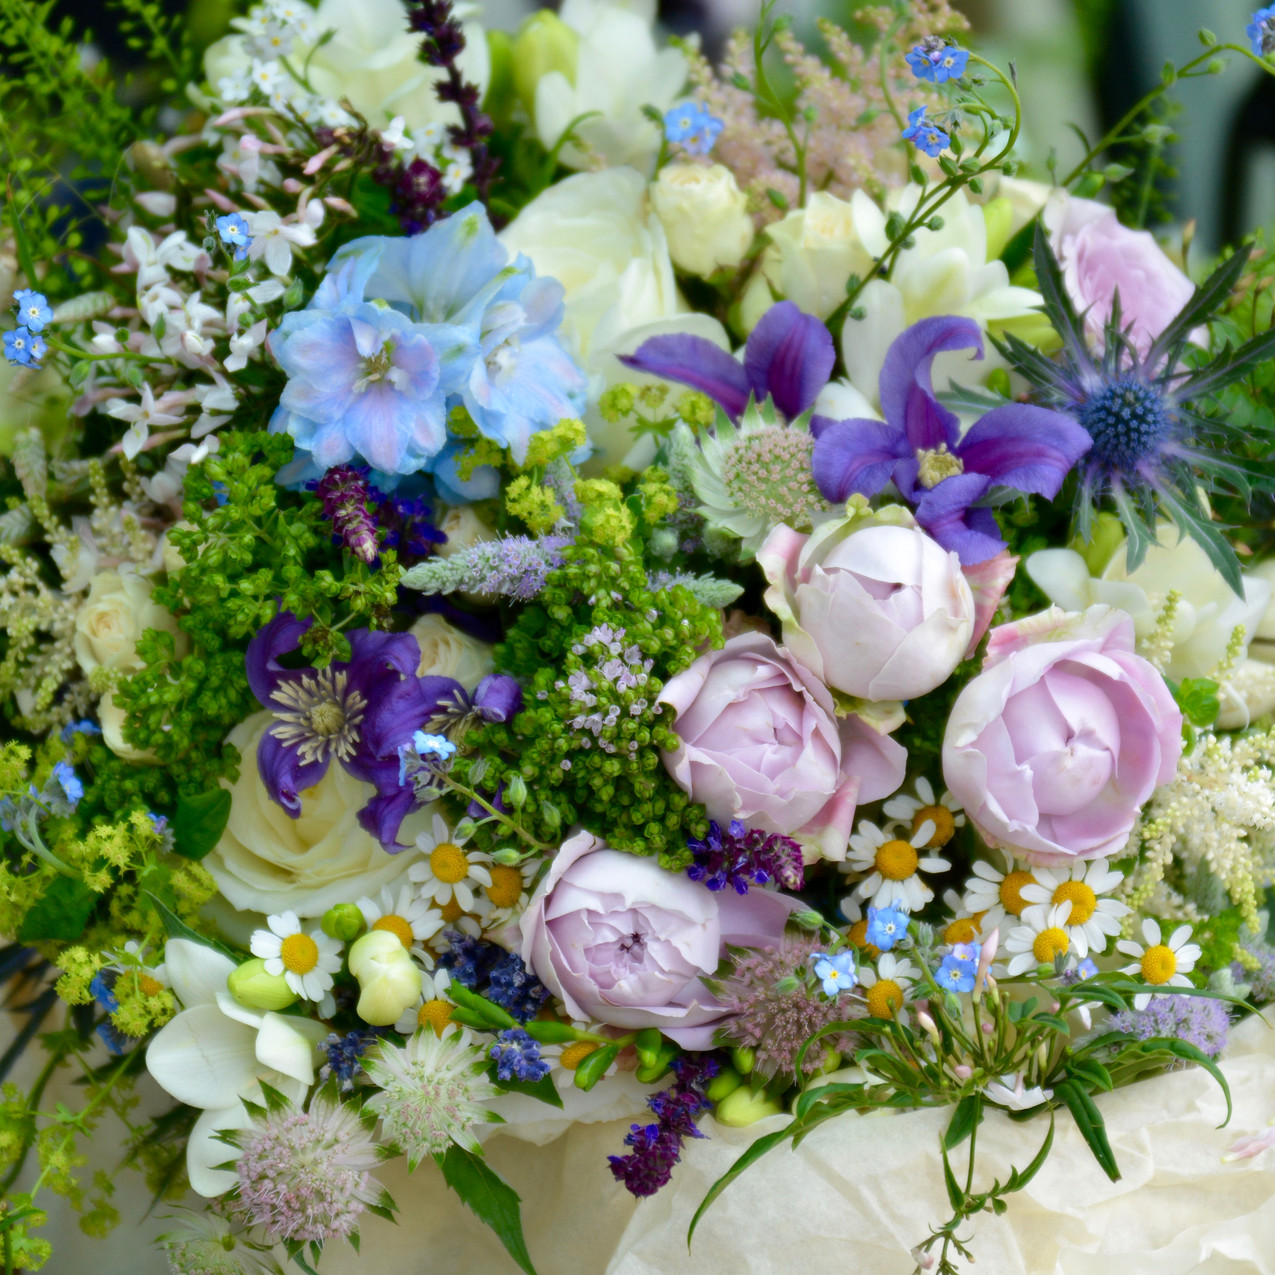 Woodland style bridal bouquet of lush green foliage and tonal blue, lilac and purple seasonal flowers, including herbs, roses, delphinium, freesias, clematis, forget-me-not, astilbe, astrantia, oregano, flowering mint, jasmine, thylaspi, feverfew, eryngium, salvia